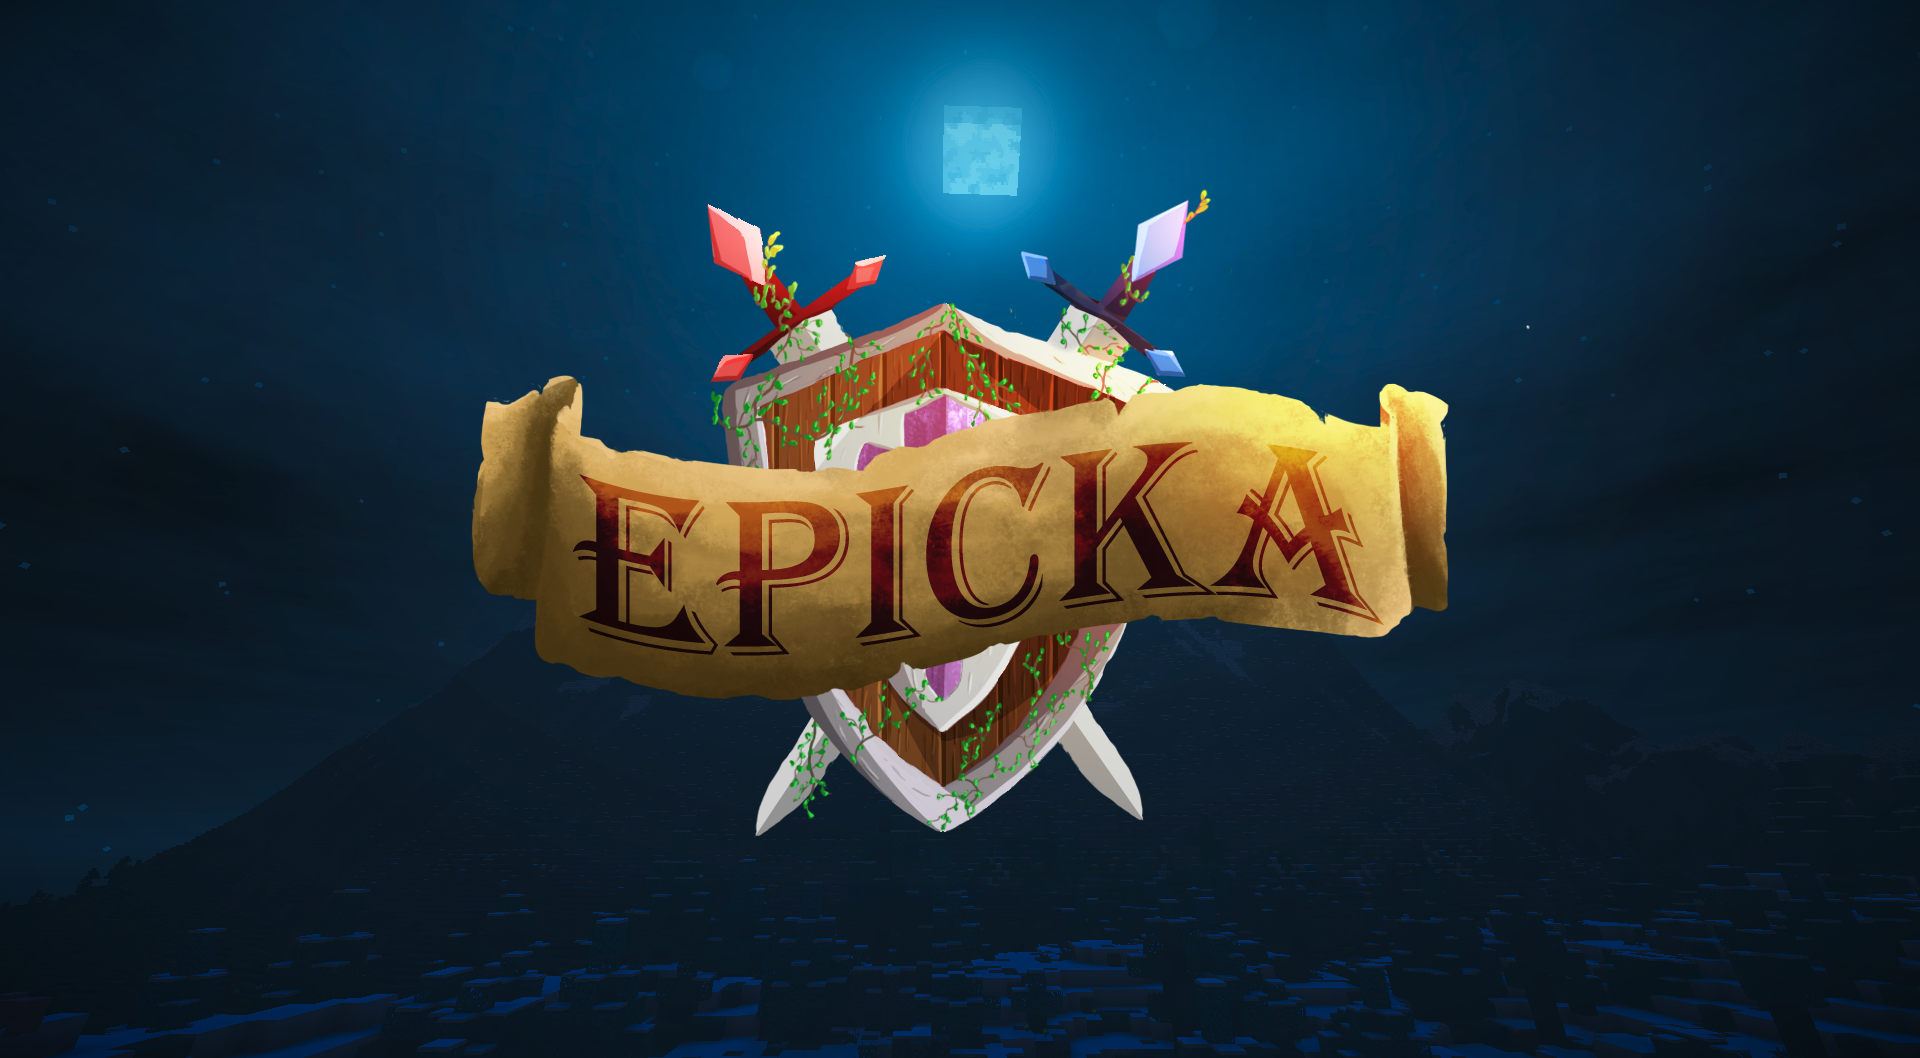 Epicka : Domination